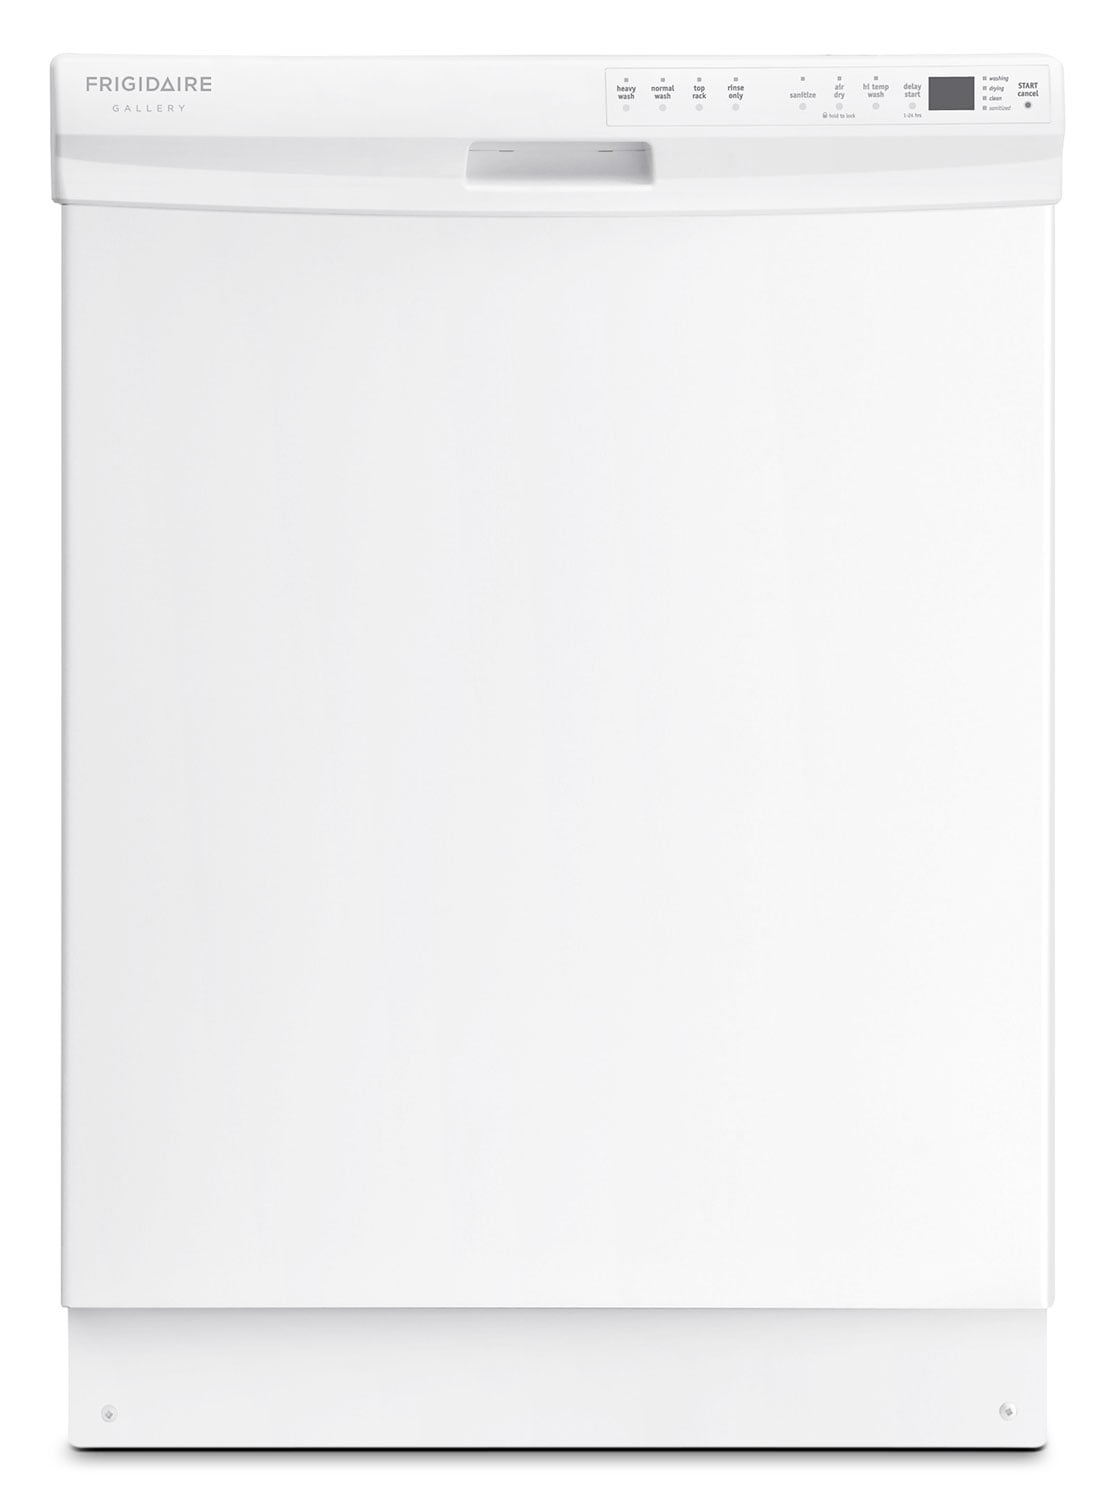 "Frigidaire Gallery White 24"" Dishwasher - FGBD2445NW"